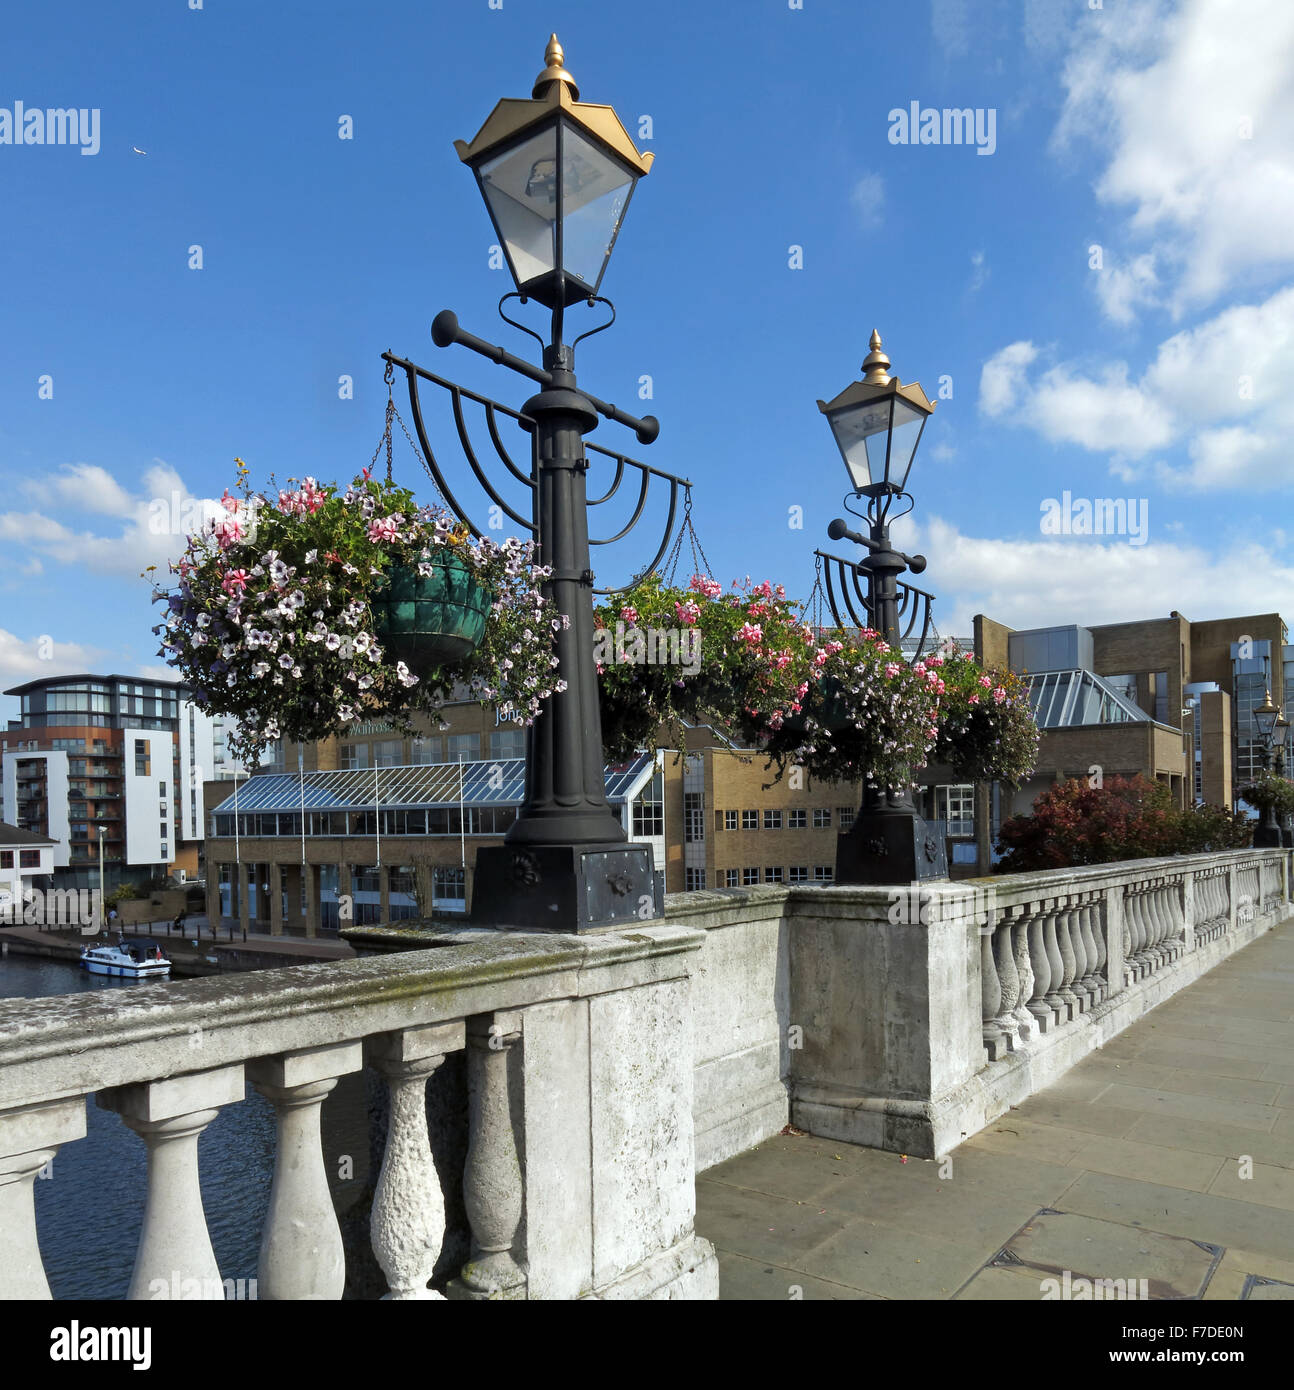 Kingston,Bridge,river,rivers,England,GB,UK,KT1,great,britain,United,Kingdom,Victoria,lamp,post,summer,flowers,stone,work,upon,on,Hampton,Wick,A308,Royal,Borough,River Thames,lamp post,stone work,Kingston upon Thames,Kingston on Thames,KingstonUponThames,Hampton Wick,Royal Borough,GoTonySmith,town,path,crossing,link,between,medieval,market,town,1825,city,of,corporation,Portland,riverside,Surrey,architectural,architecture,tourism,tourist,tourists,path,walkway,SW,South,West,Buy Pictures of,Buy Images Of,Thames path,Thames Down Link,City of London Corporation,Navigation Committee,classical style,Portland Stone,Thames Riverside,South West